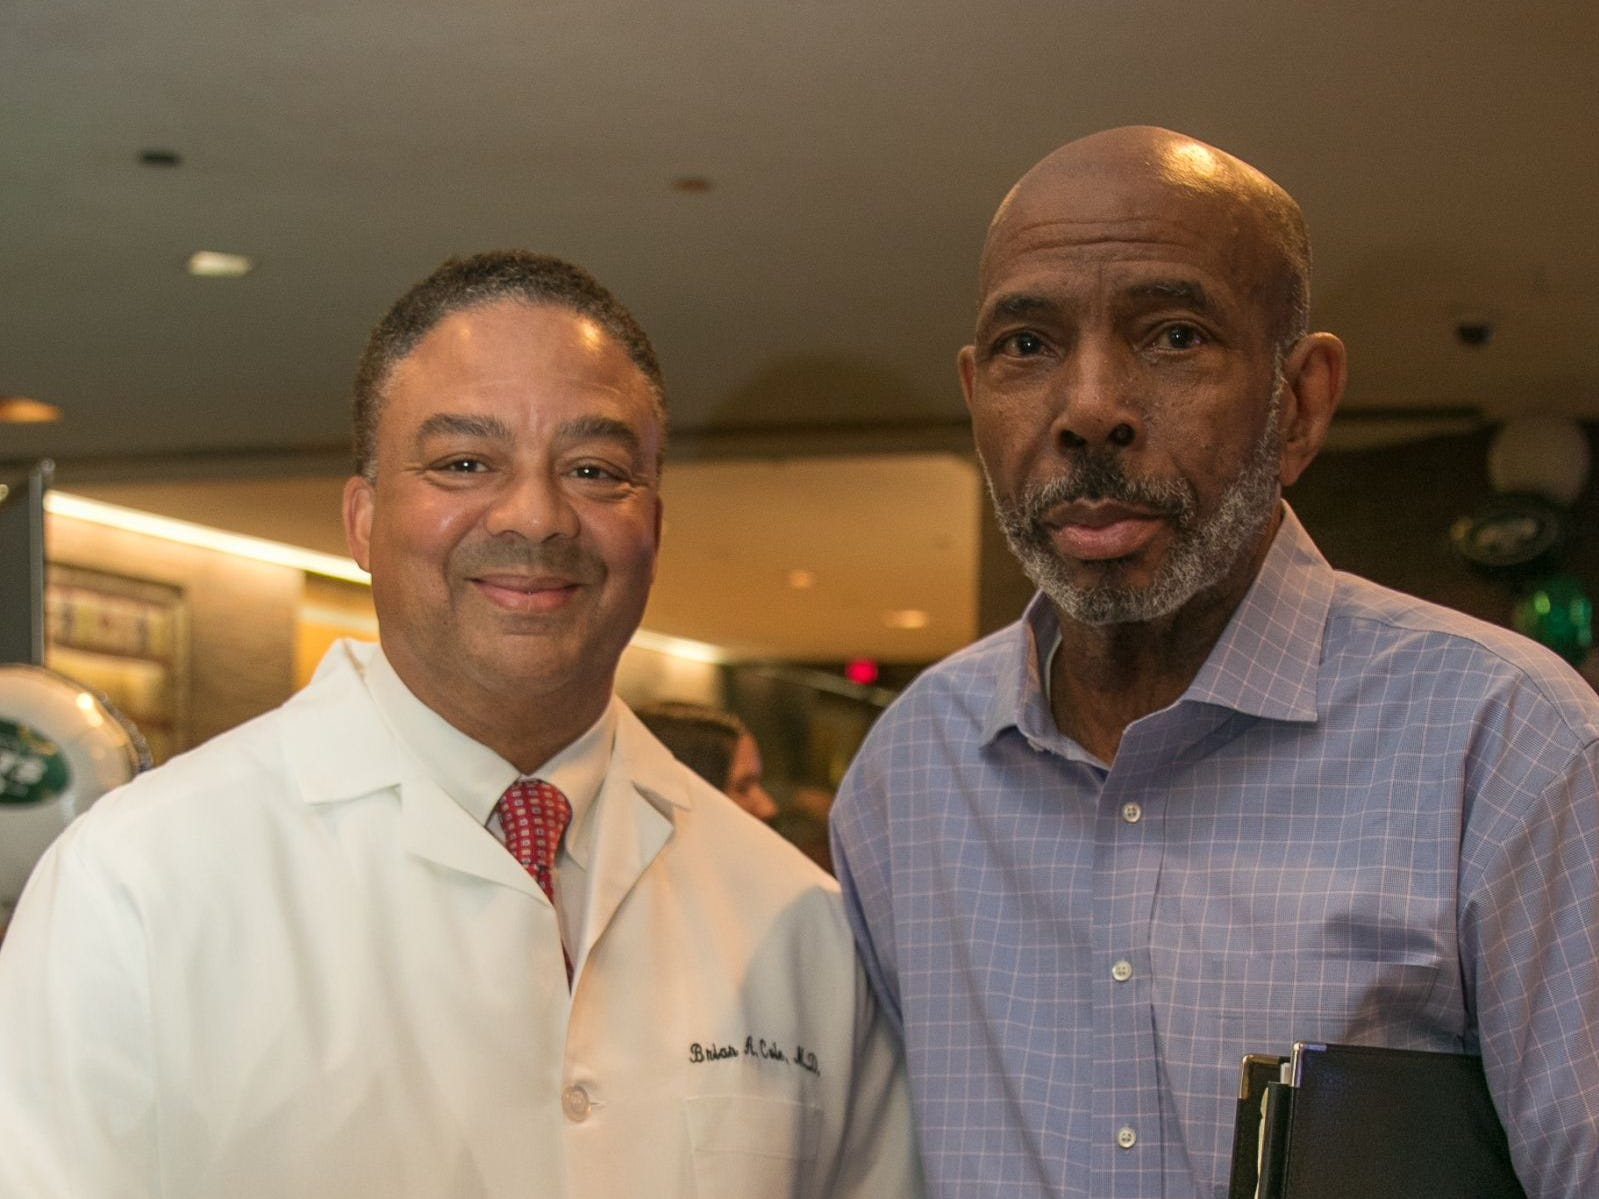 Dr. Brian Cole, Richard Standard. Englewood Health hosted its Men's Health and Football event with former Jets and Giants players and Don La Greca from ESPN radio. Attendees watched the Thursday night football game while receiving advice about staying healthy and tackling health problems early on. 09/20/2018